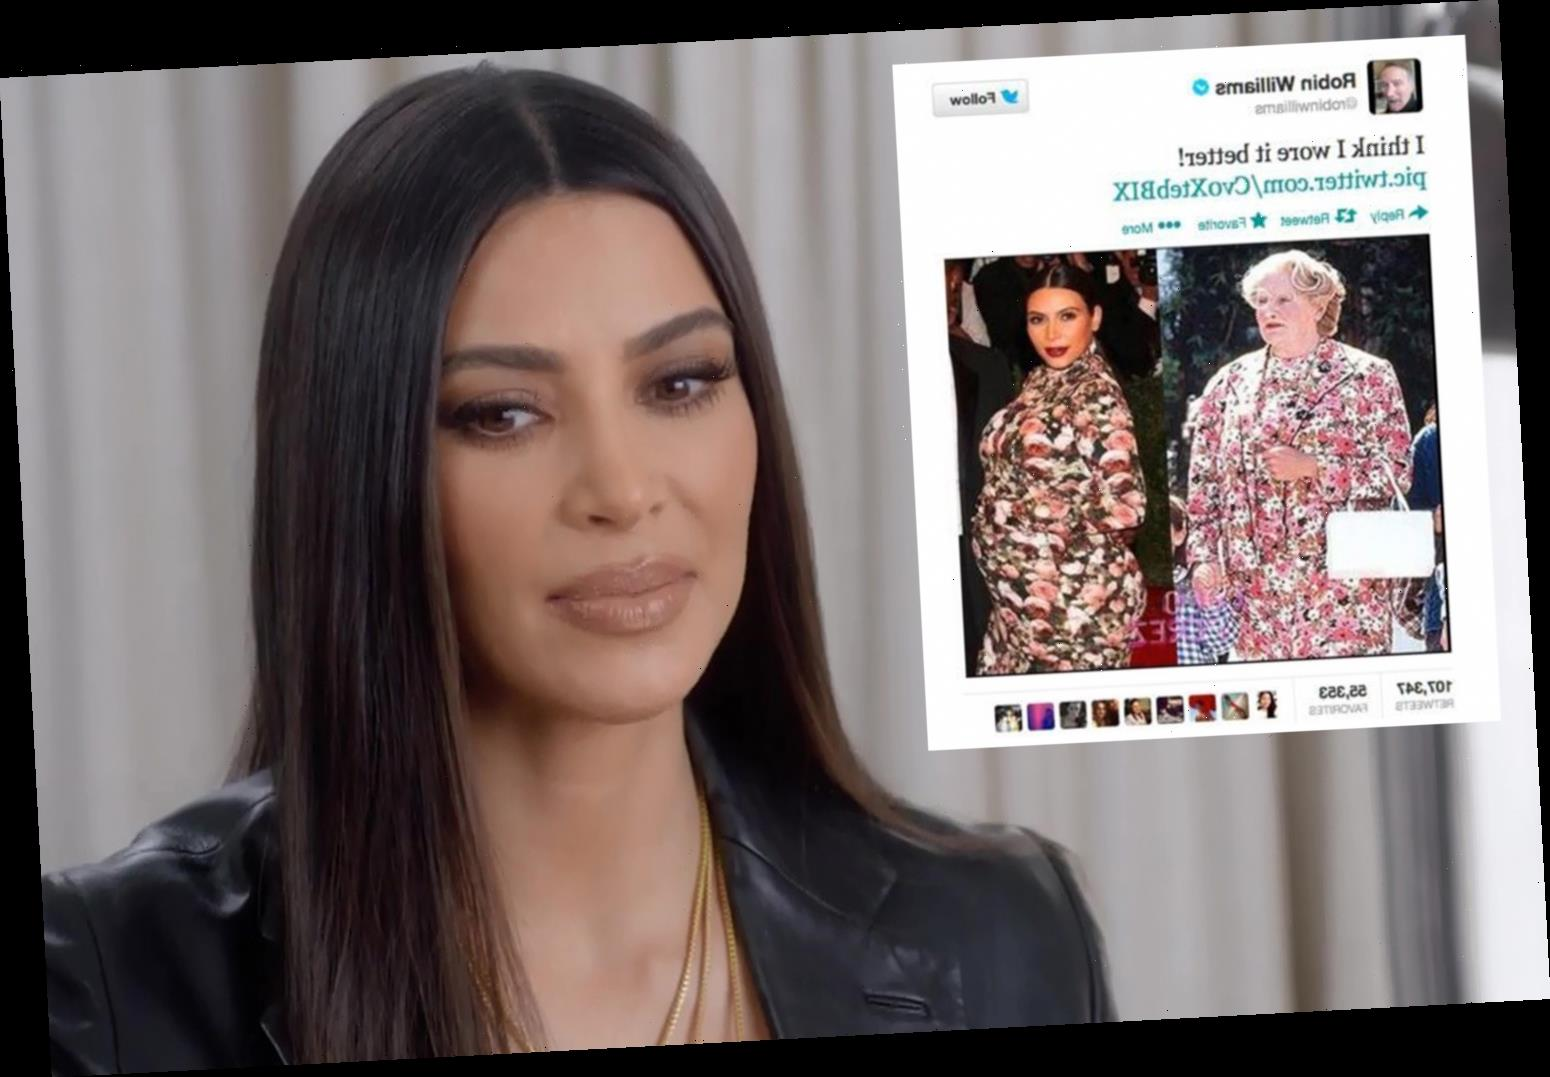 Kim Kardashian says she 'cried all the way home' after being compared to Mrs Doubtfire at the Met Gala